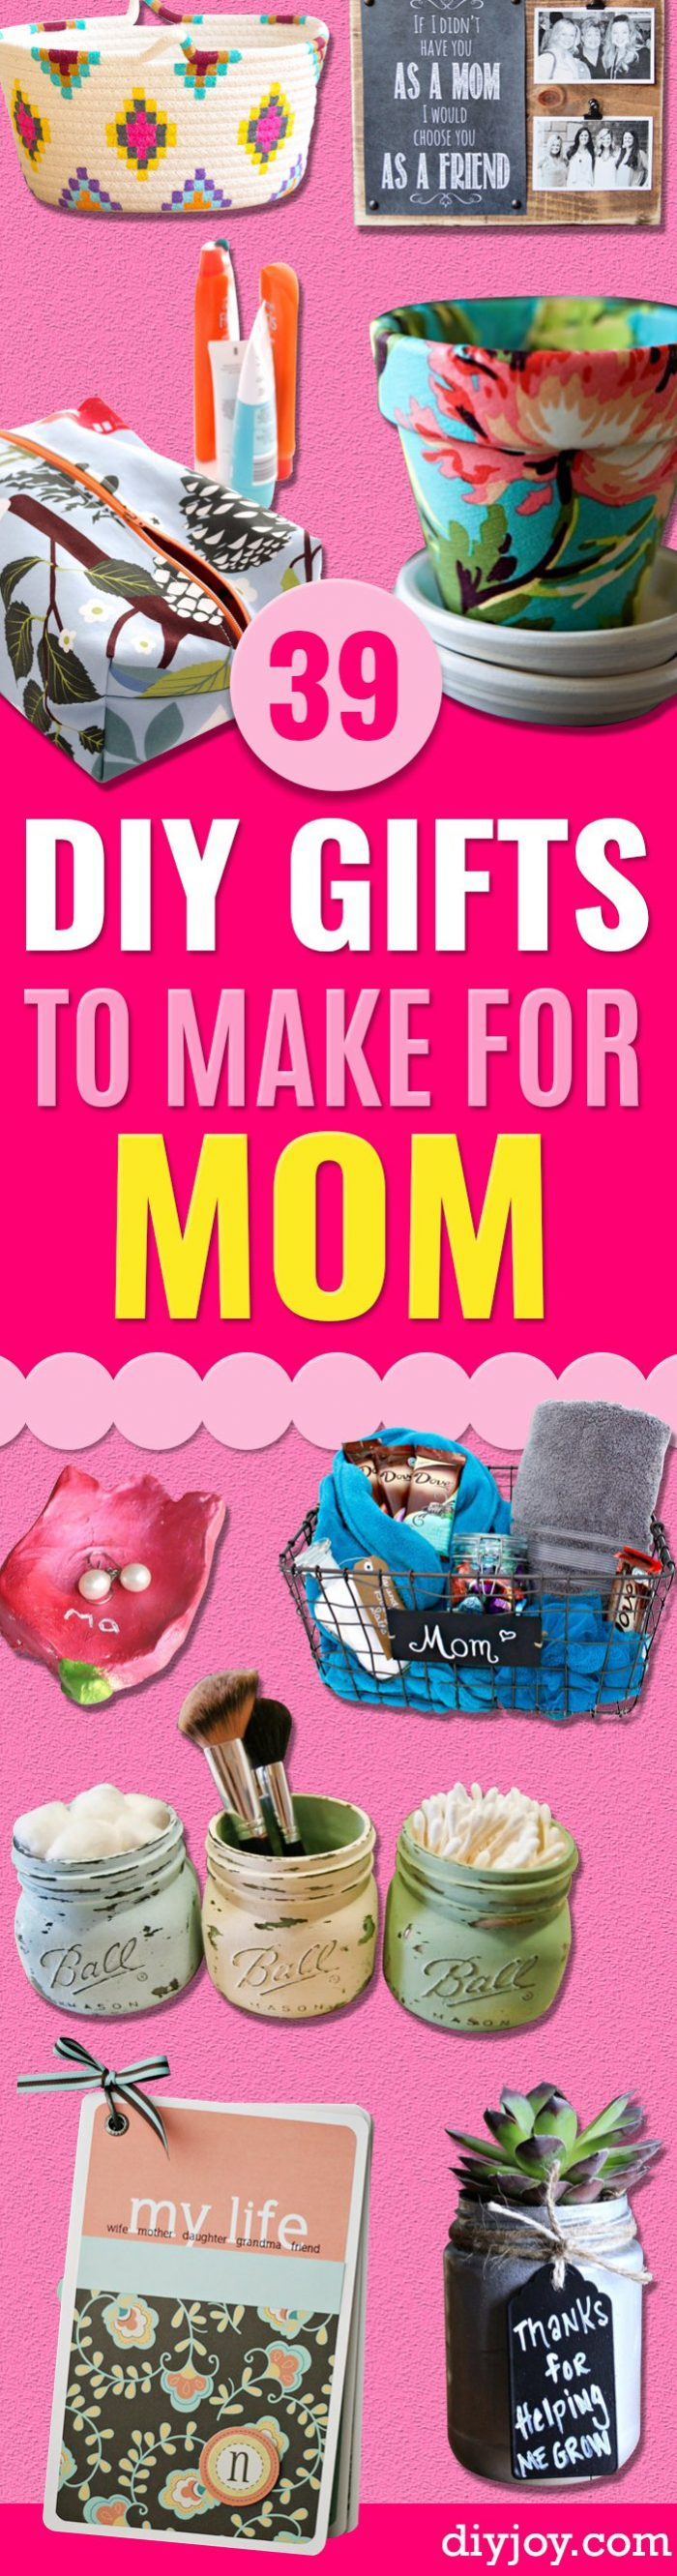 DIY Gifts for Mom - Handmade Gifts for Her- Crafts for Women to DYI #diygifts #christmasgifts